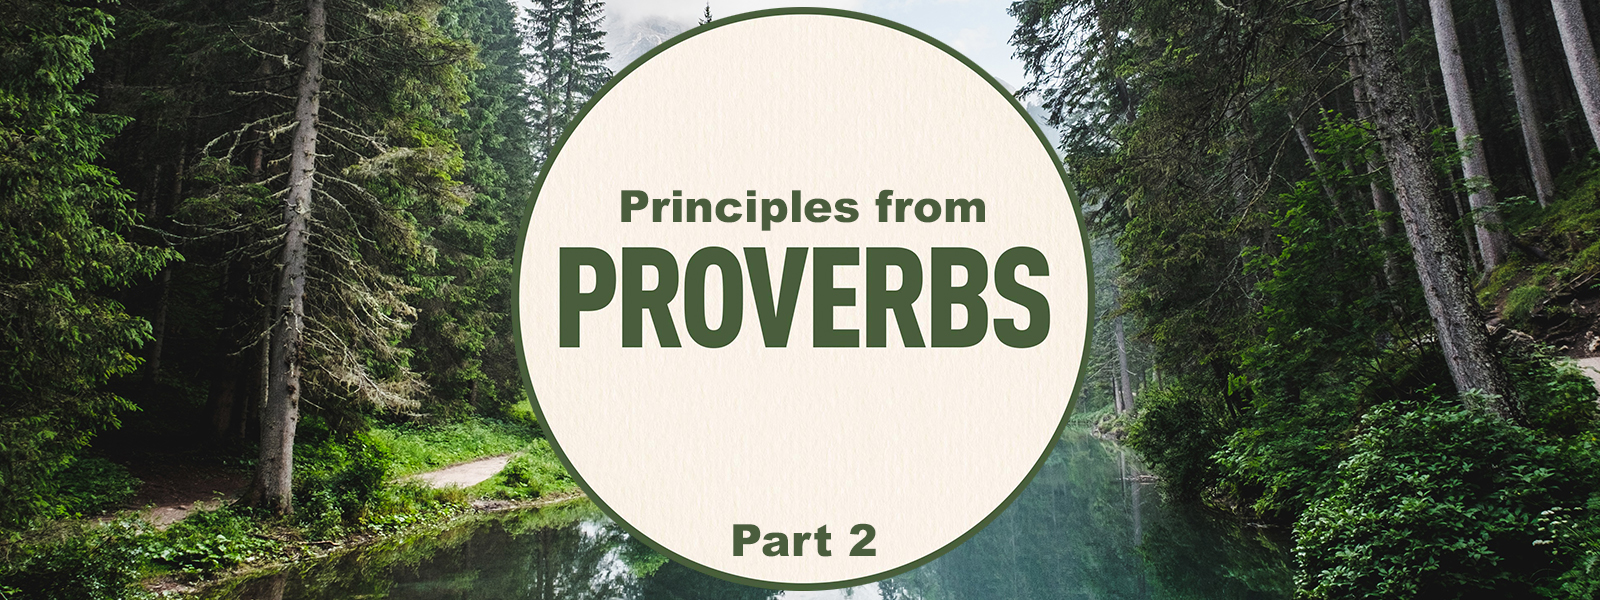 Priciples from Proverbs 2